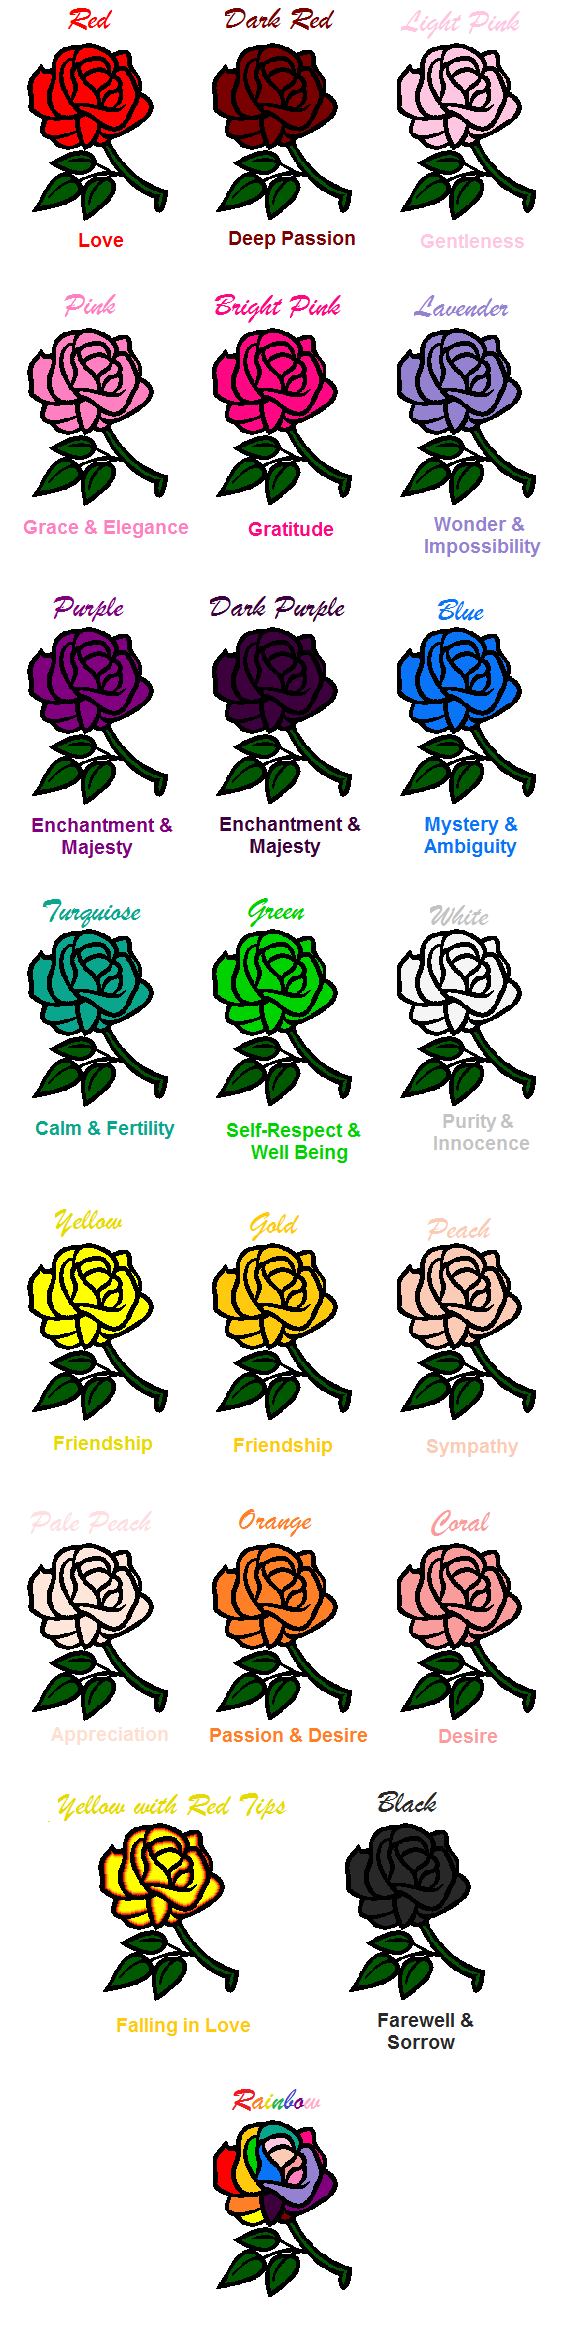 Color meanings by arianatheechidna on deviantart rose color meanings by arianatheechidna rose color meanings by arianatheechidna buycottarizona Choice Image